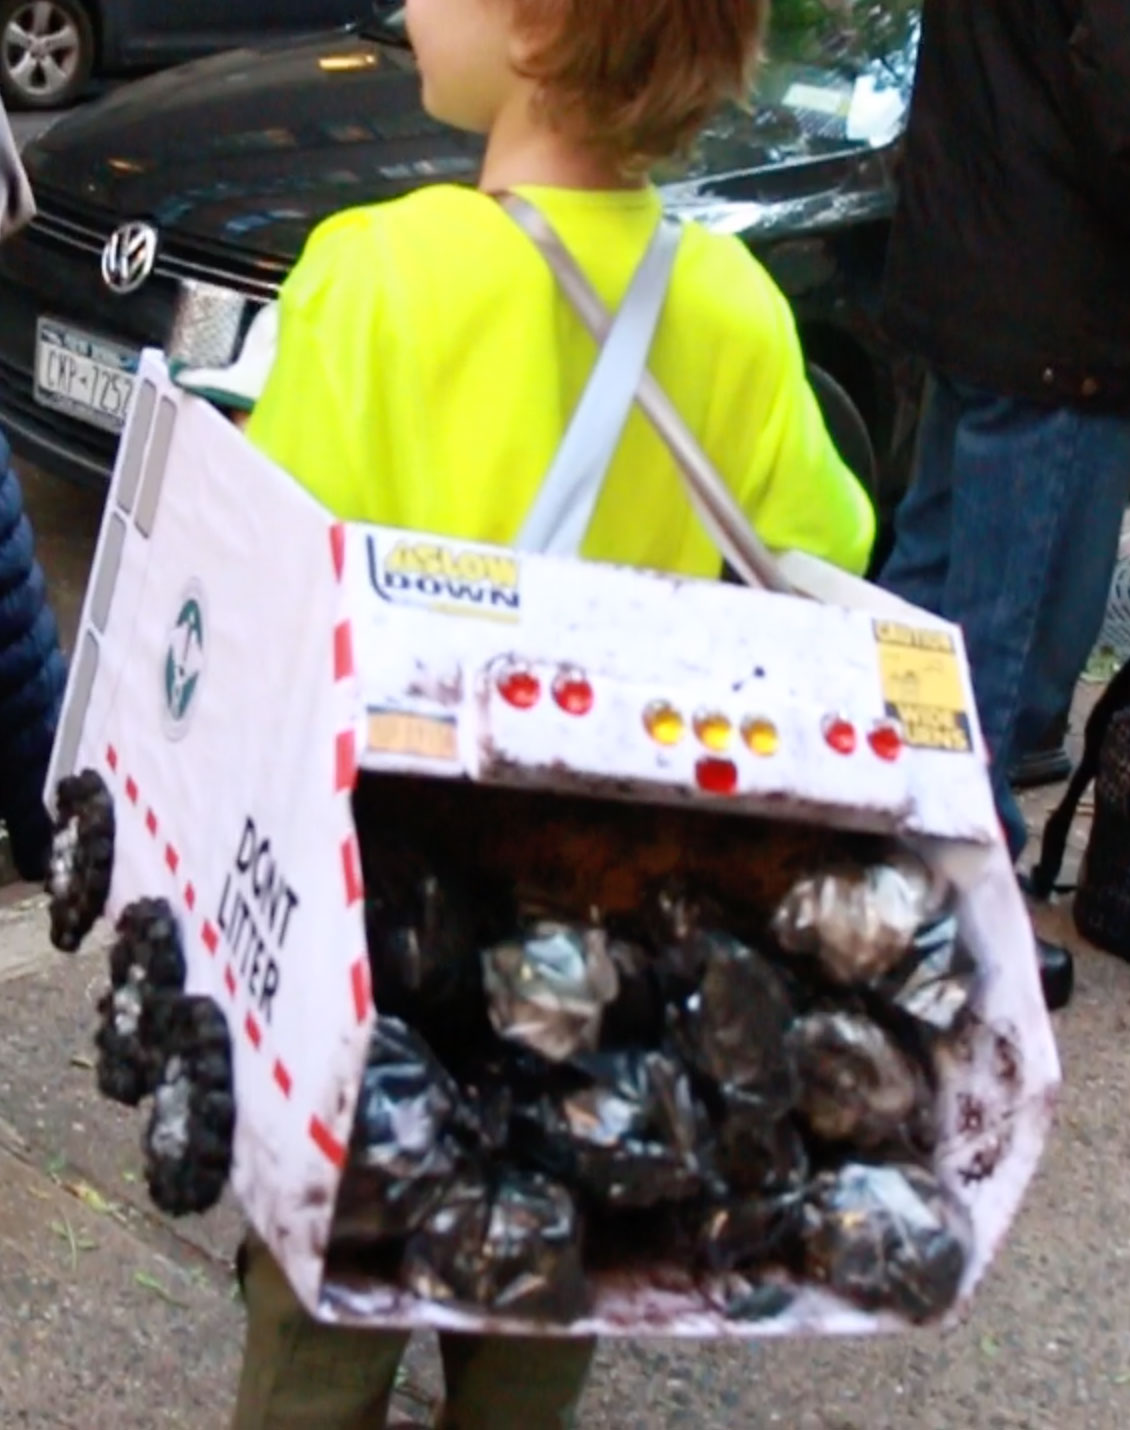 <div class='meta'><div class='origin-logo' data-origin='none'></div><span class='caption-text' data-credit=''>A boy who loves transportation dressed as a garbage trunk with bags in the back.</span></div>